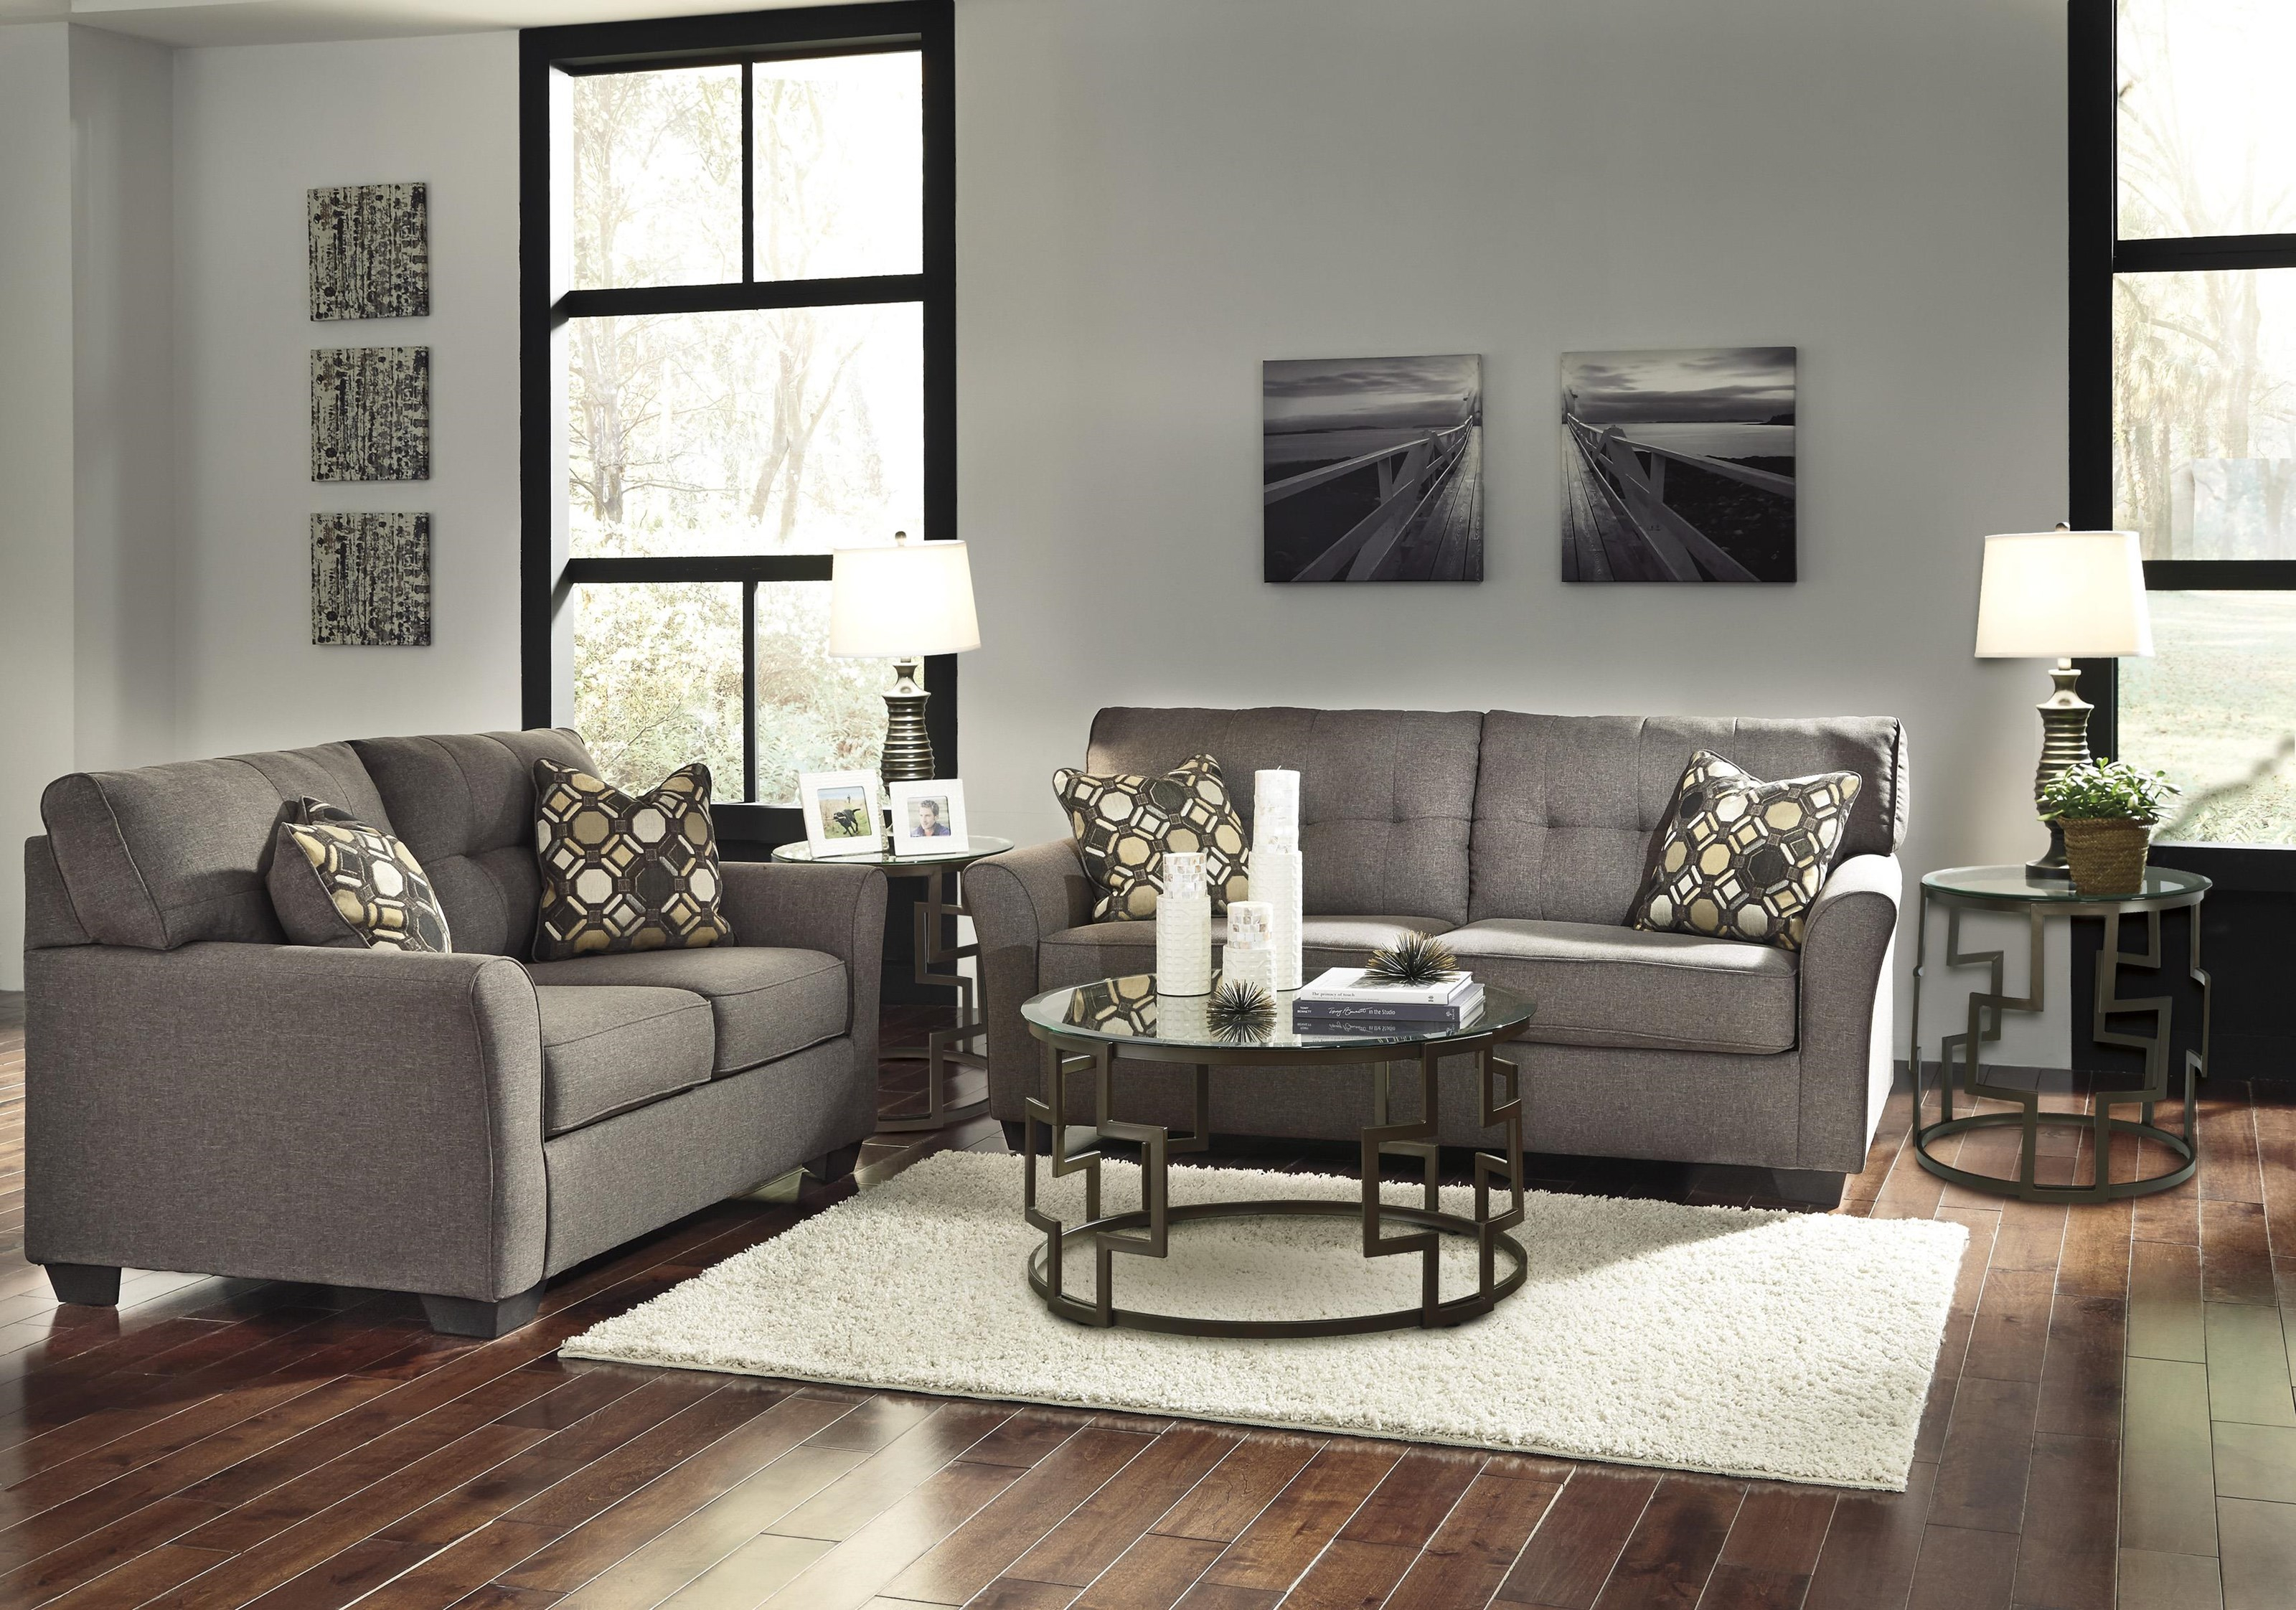 Tibbee 8 Piece Living Room Set Ashley Signature Design At Dunk Bright Furniture inside 8 Piece Living Room Set